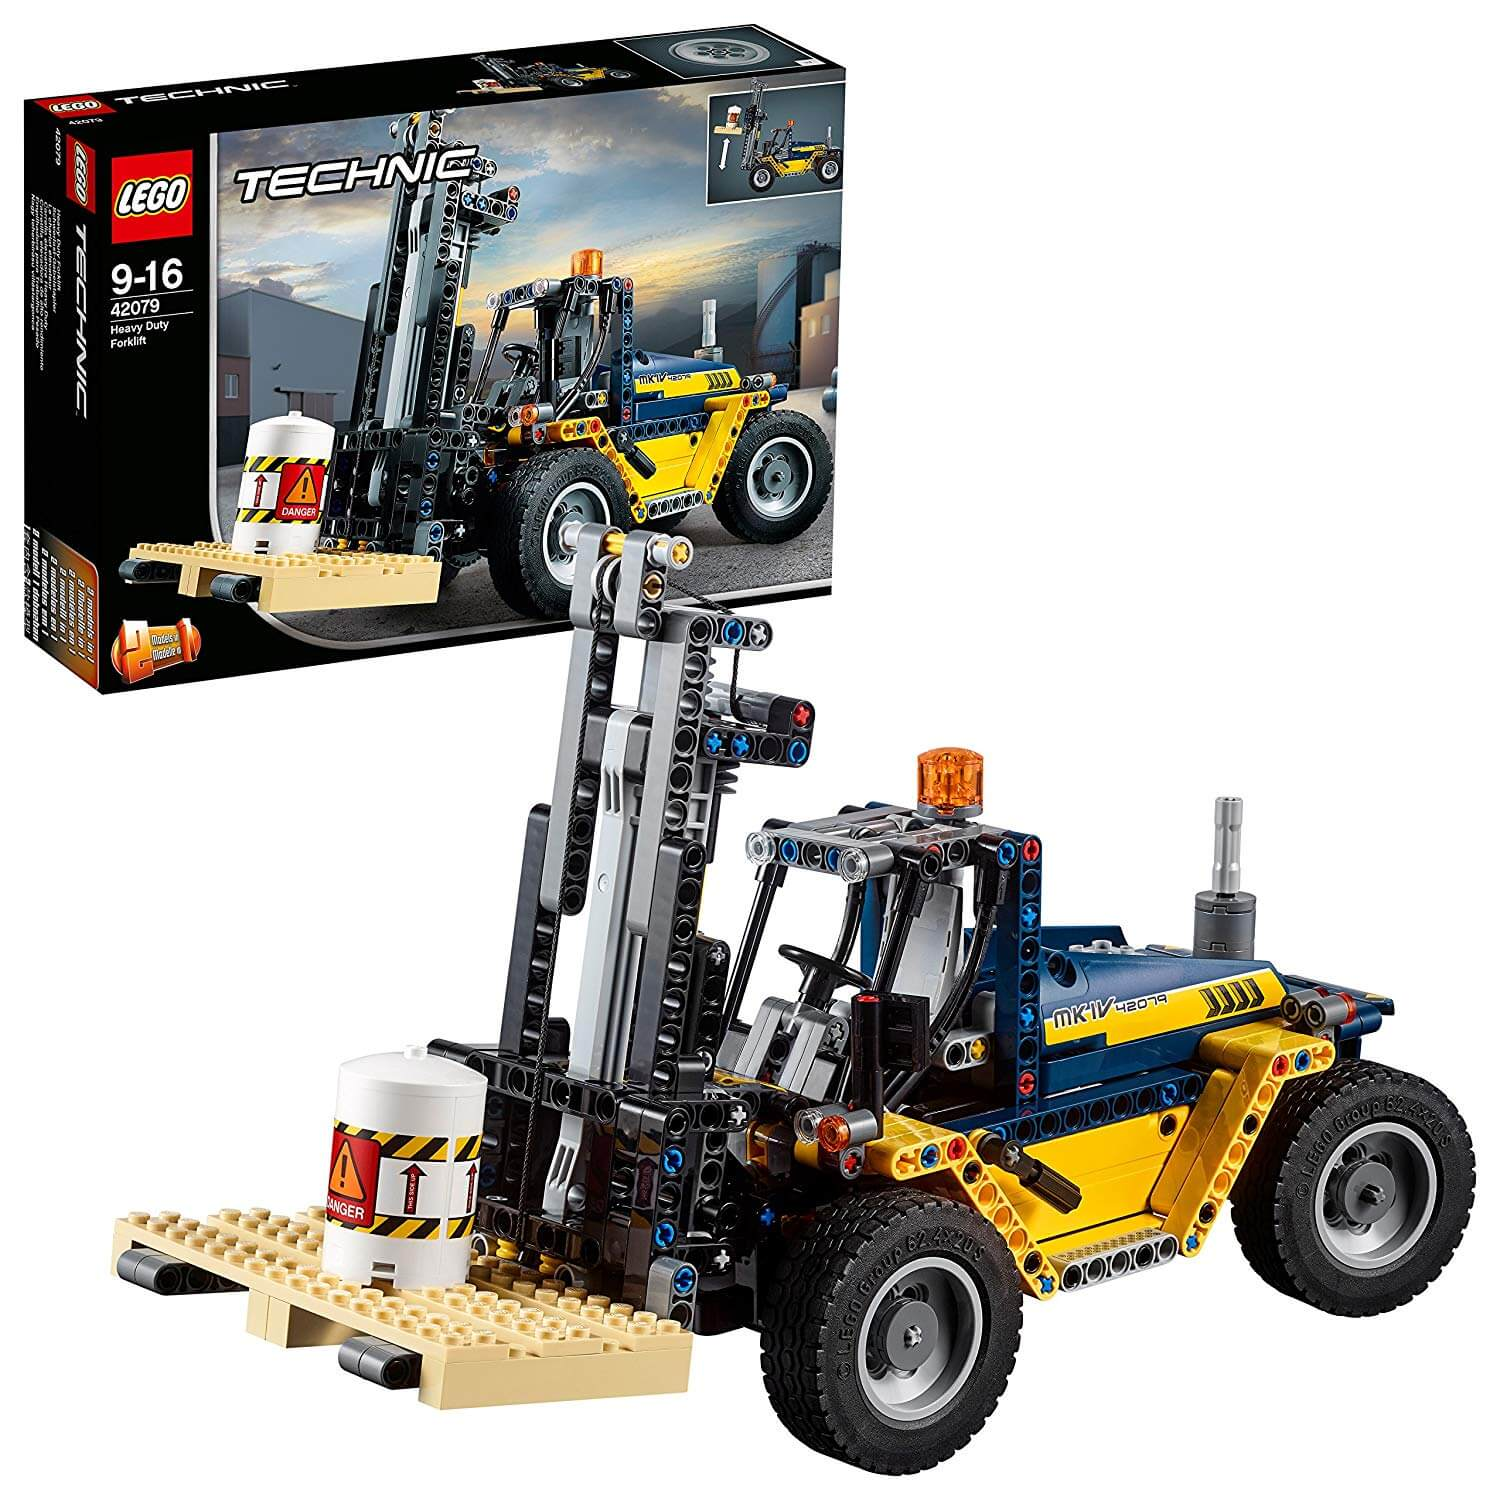 LEGO 42079 Heavy Duty Forklift Technic